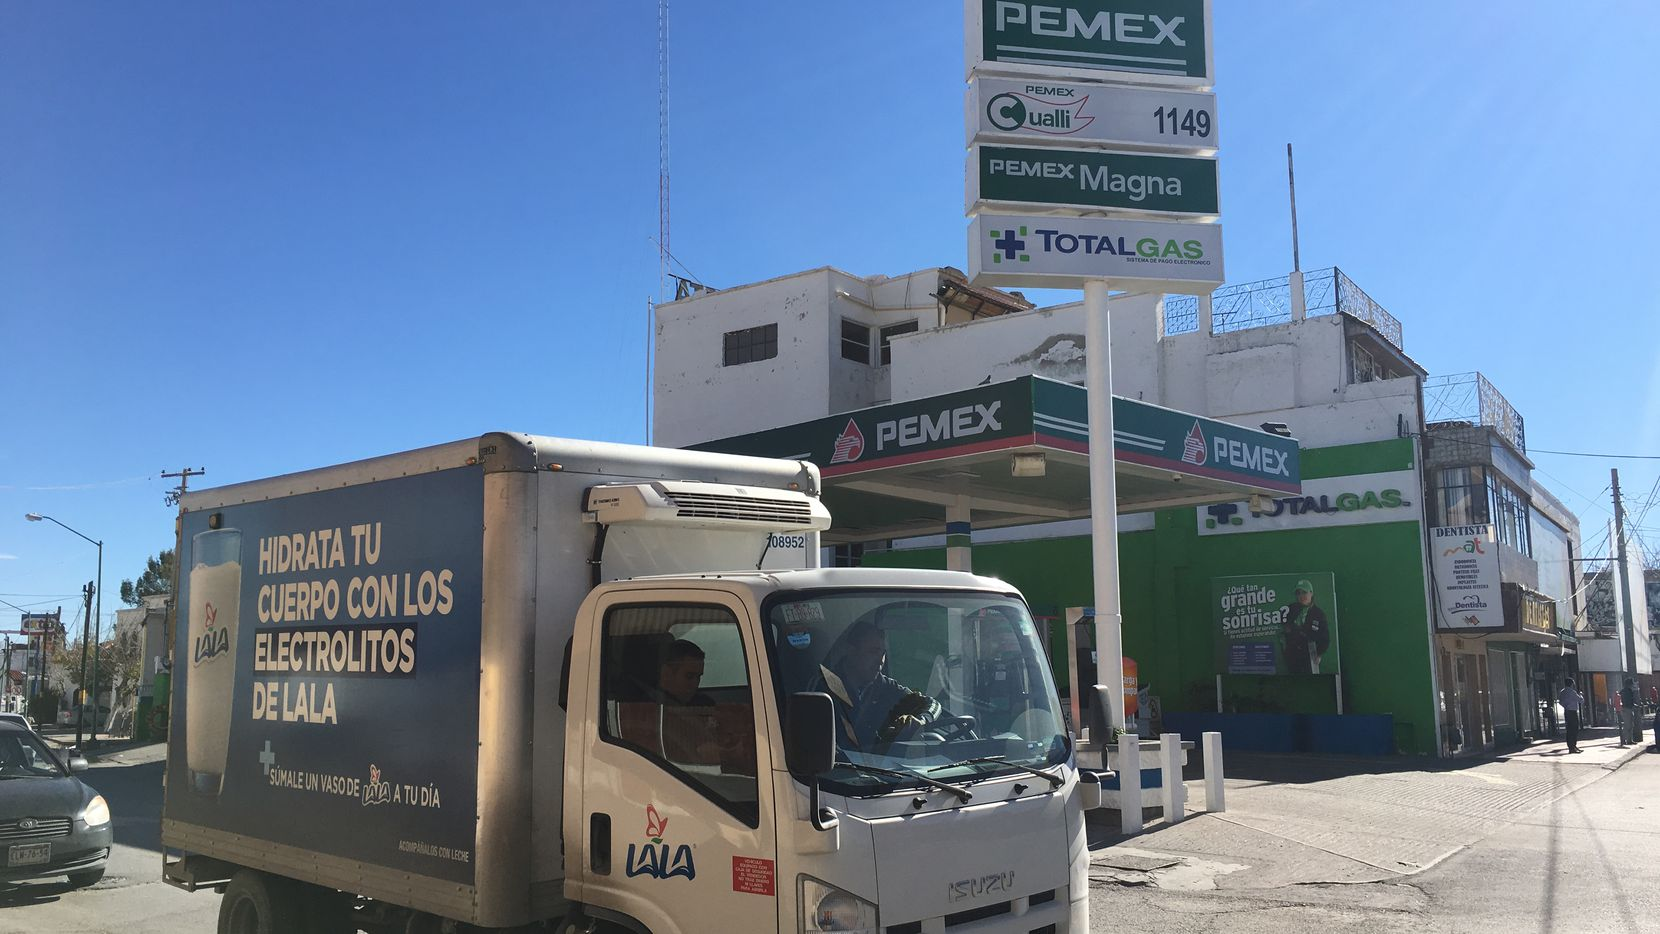 A 20 percent gas price hike at Pemex stations across Mexico took effect New Year's Day sparking outrage and causing pain at the pump for many motorists.